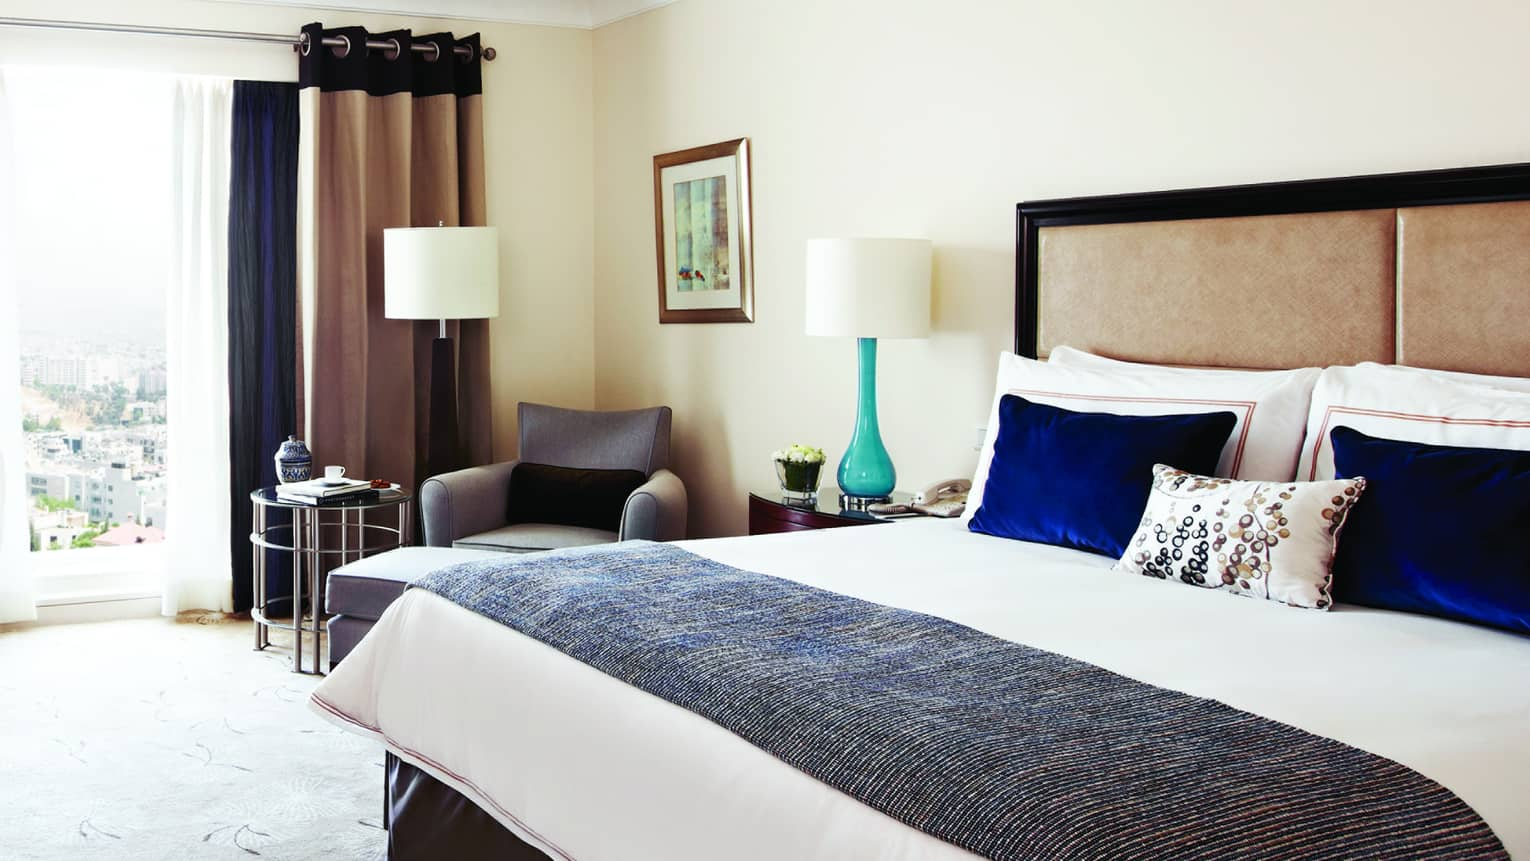 Superior room bed with blue velvet pillows, knit blanket, beige padded headboard, teal lamp, sunny window